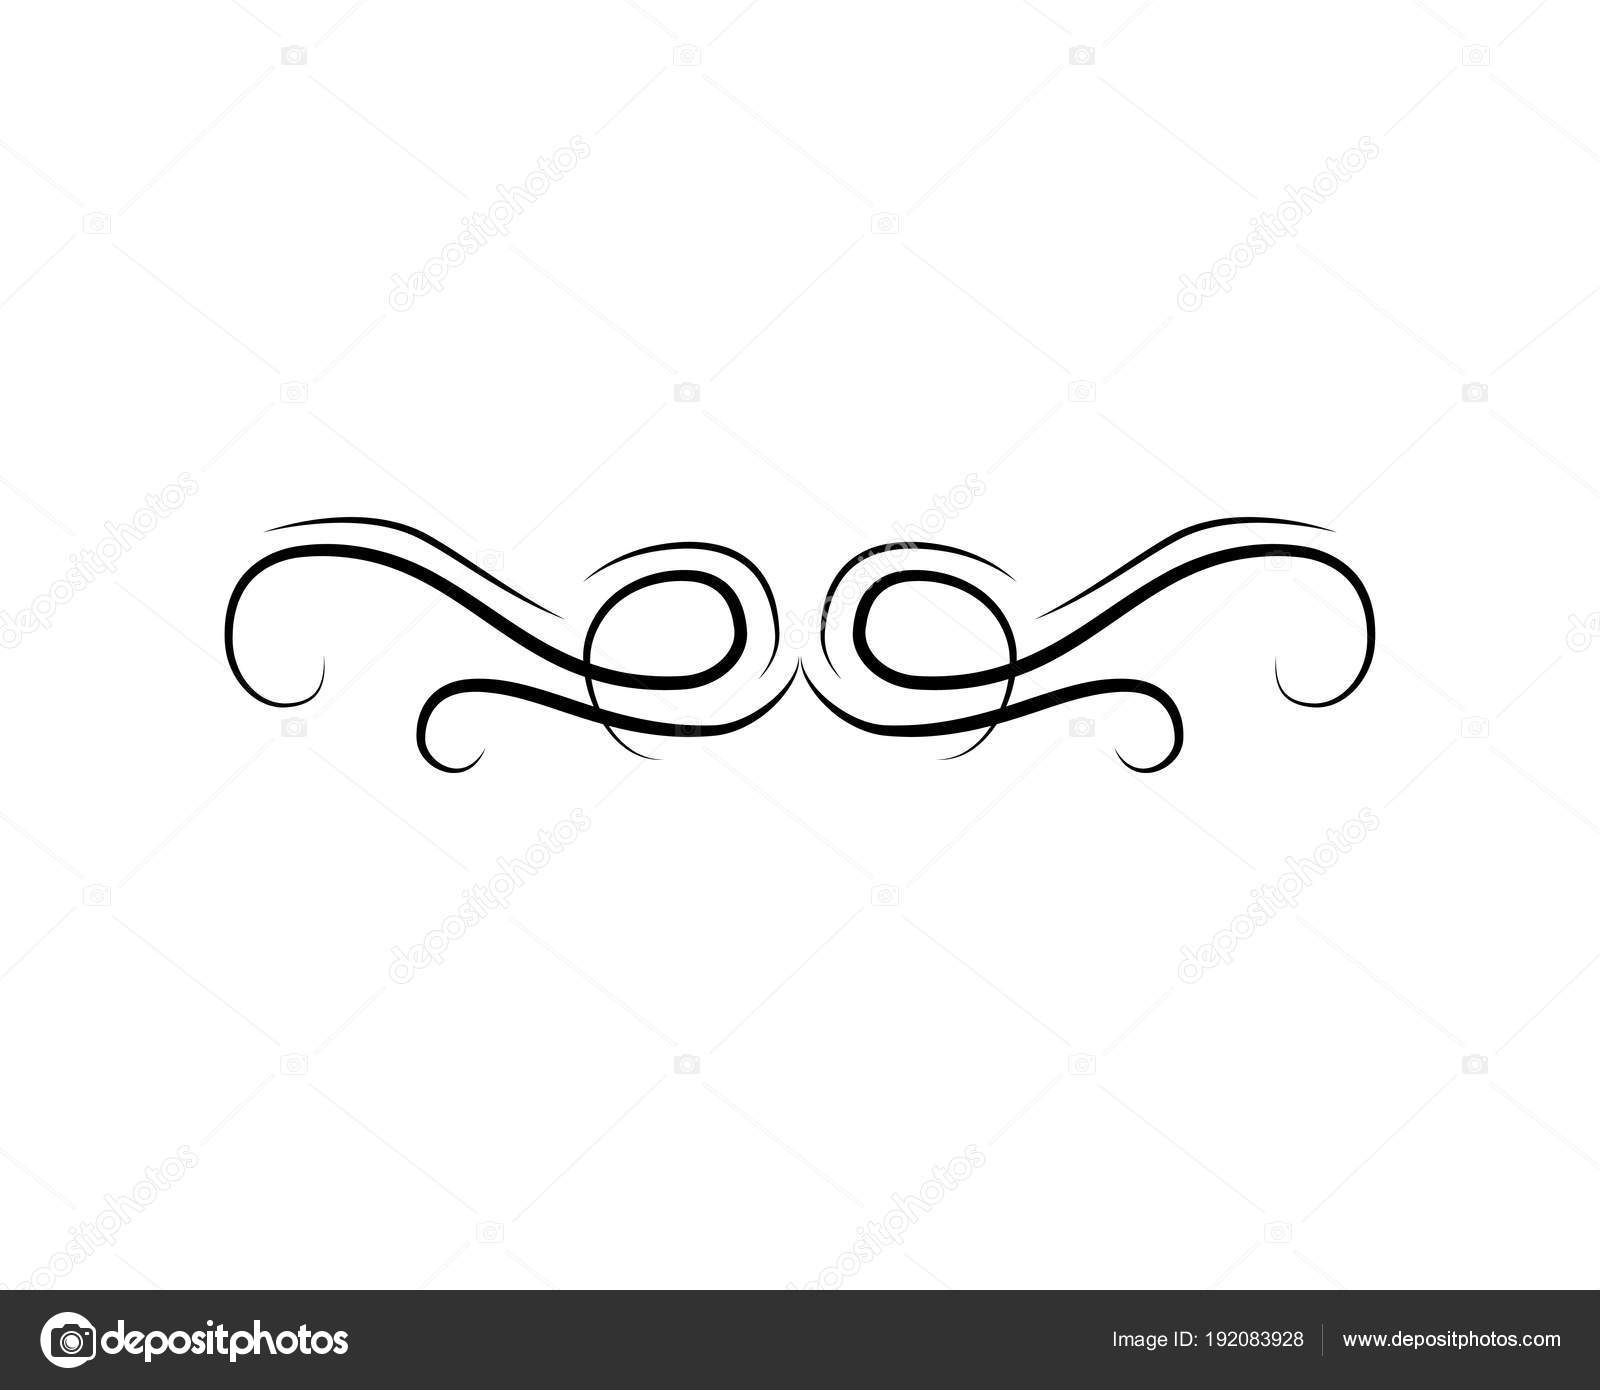 Scroll decorative element swirl curl filigree wedding invitation swirl curl filigree wedding invitation page divider vector wave vector by lh stopboris Images